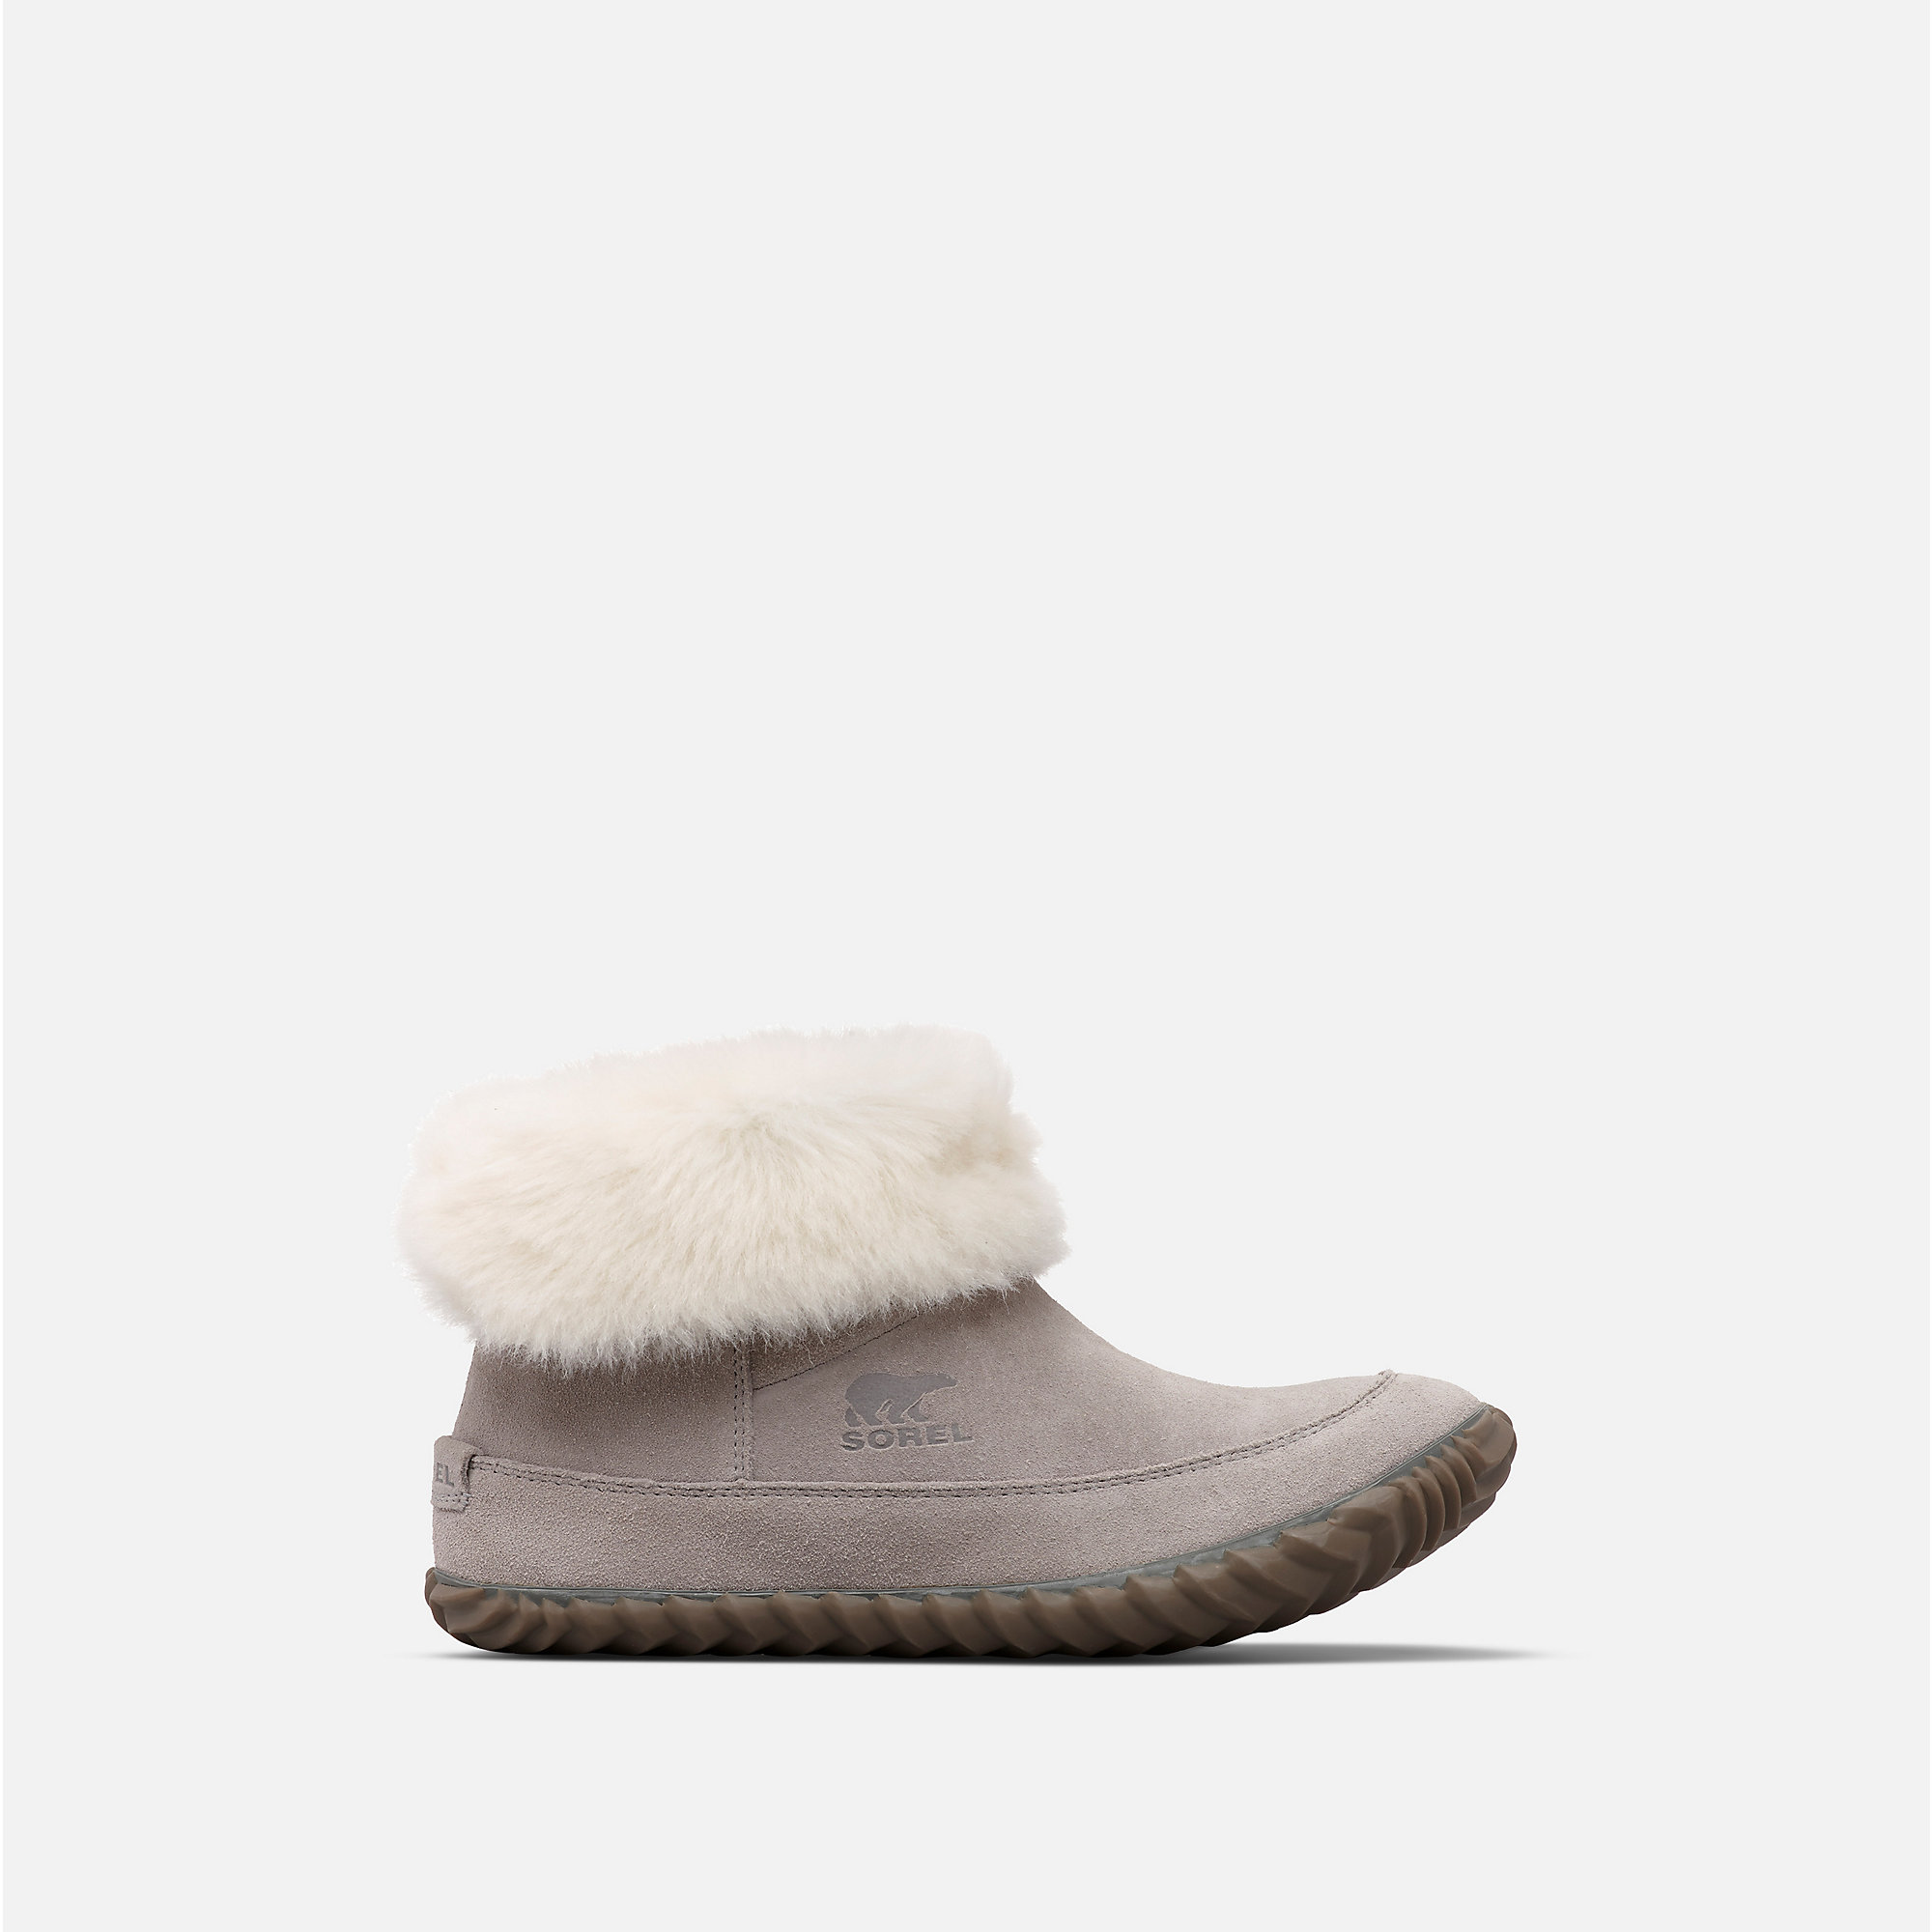 Sorel OUT N ABOUT  BOOTIE  061